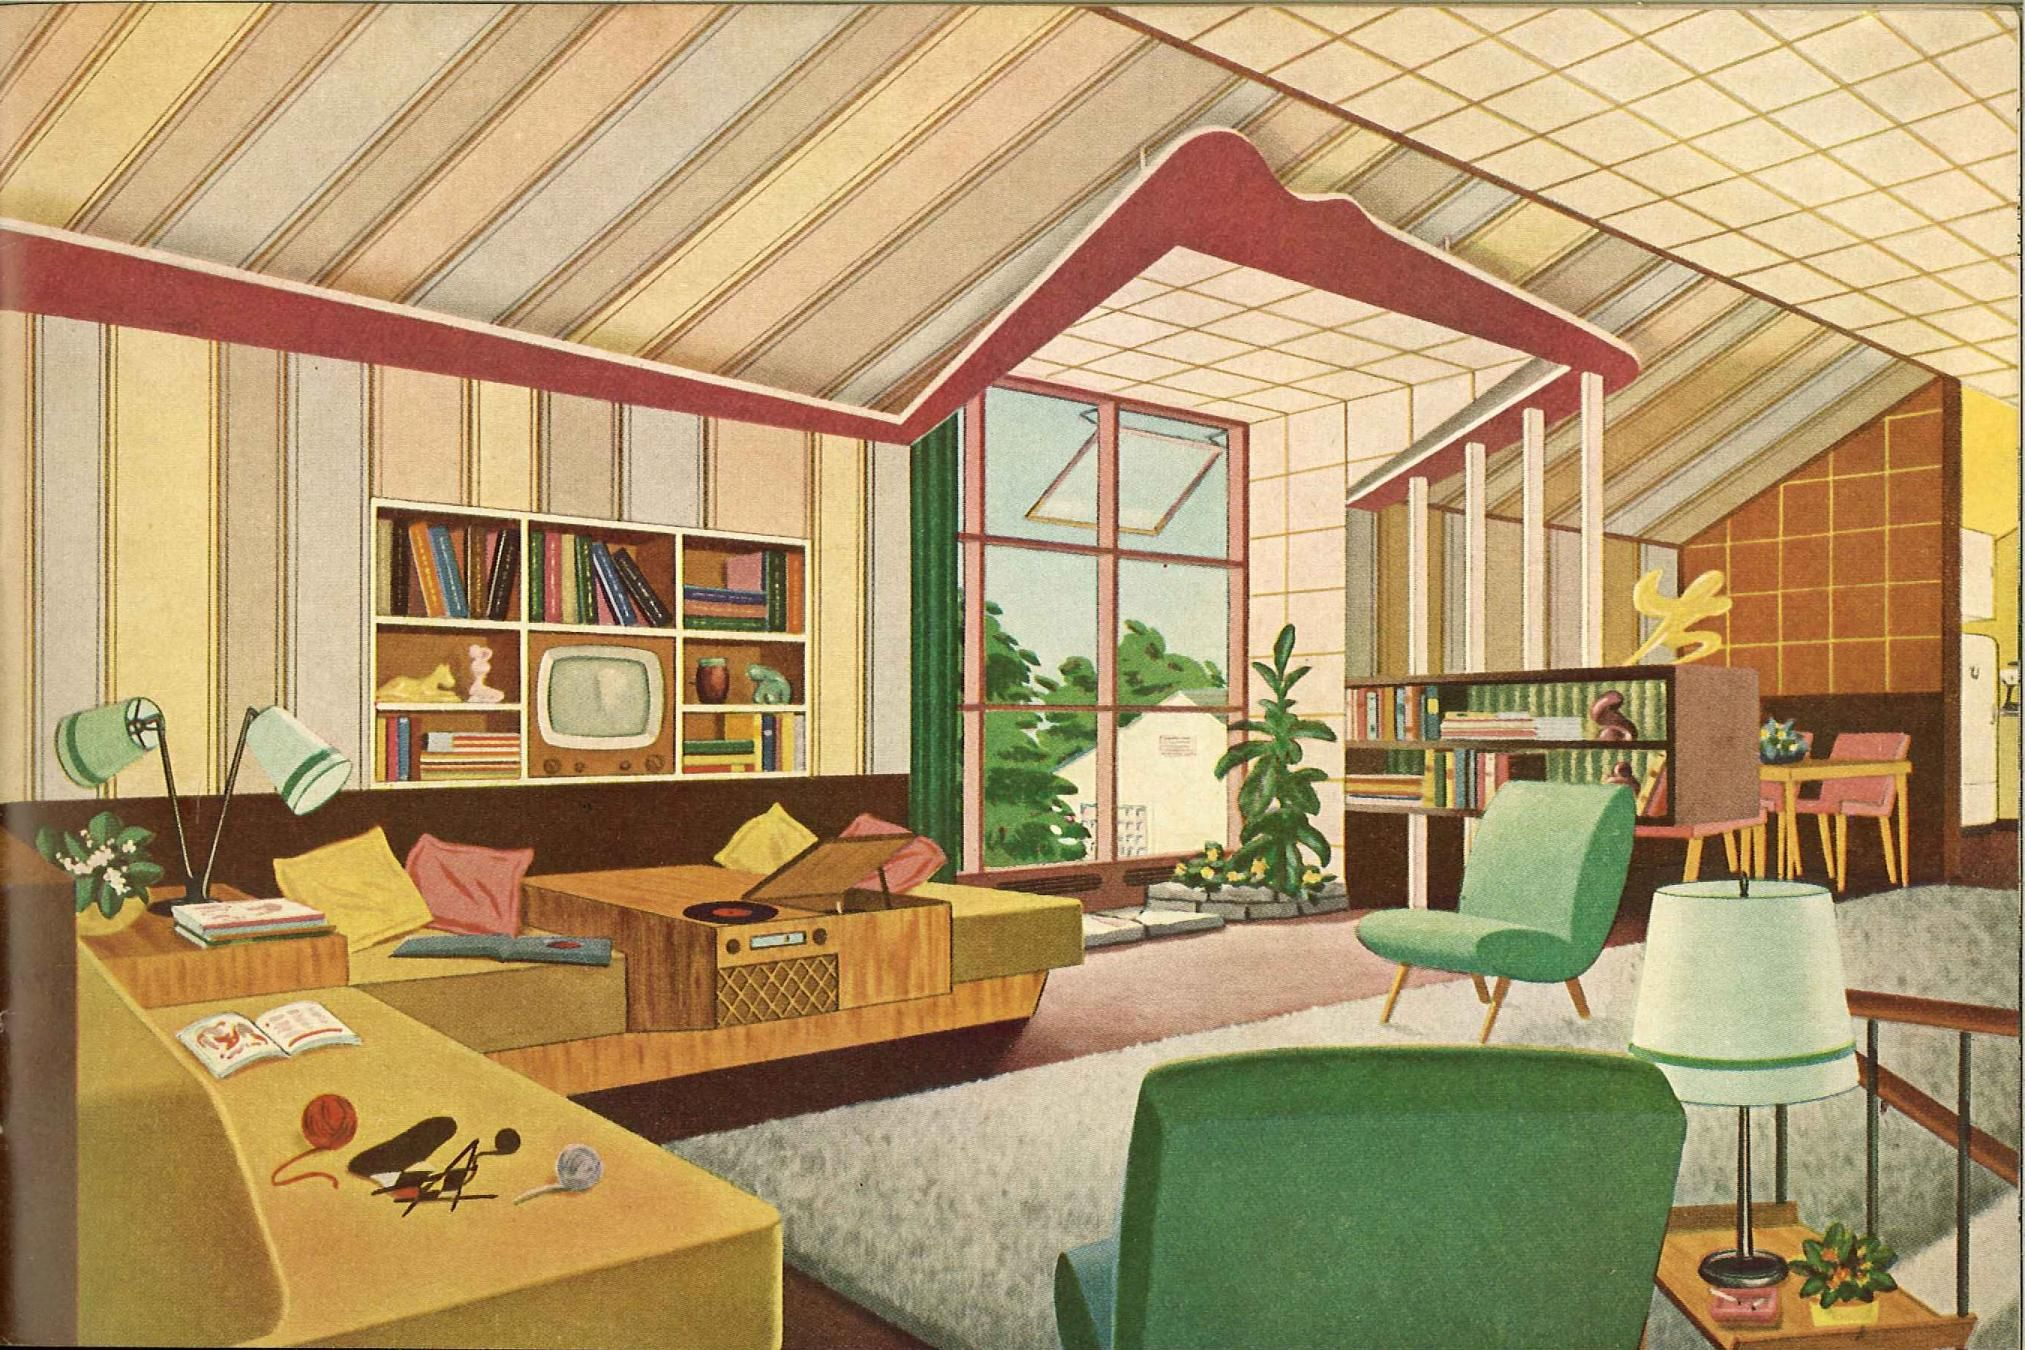 26 best illustrated interiors images on Pinterest | Drawings, Modern  interiors and Vintage interiors